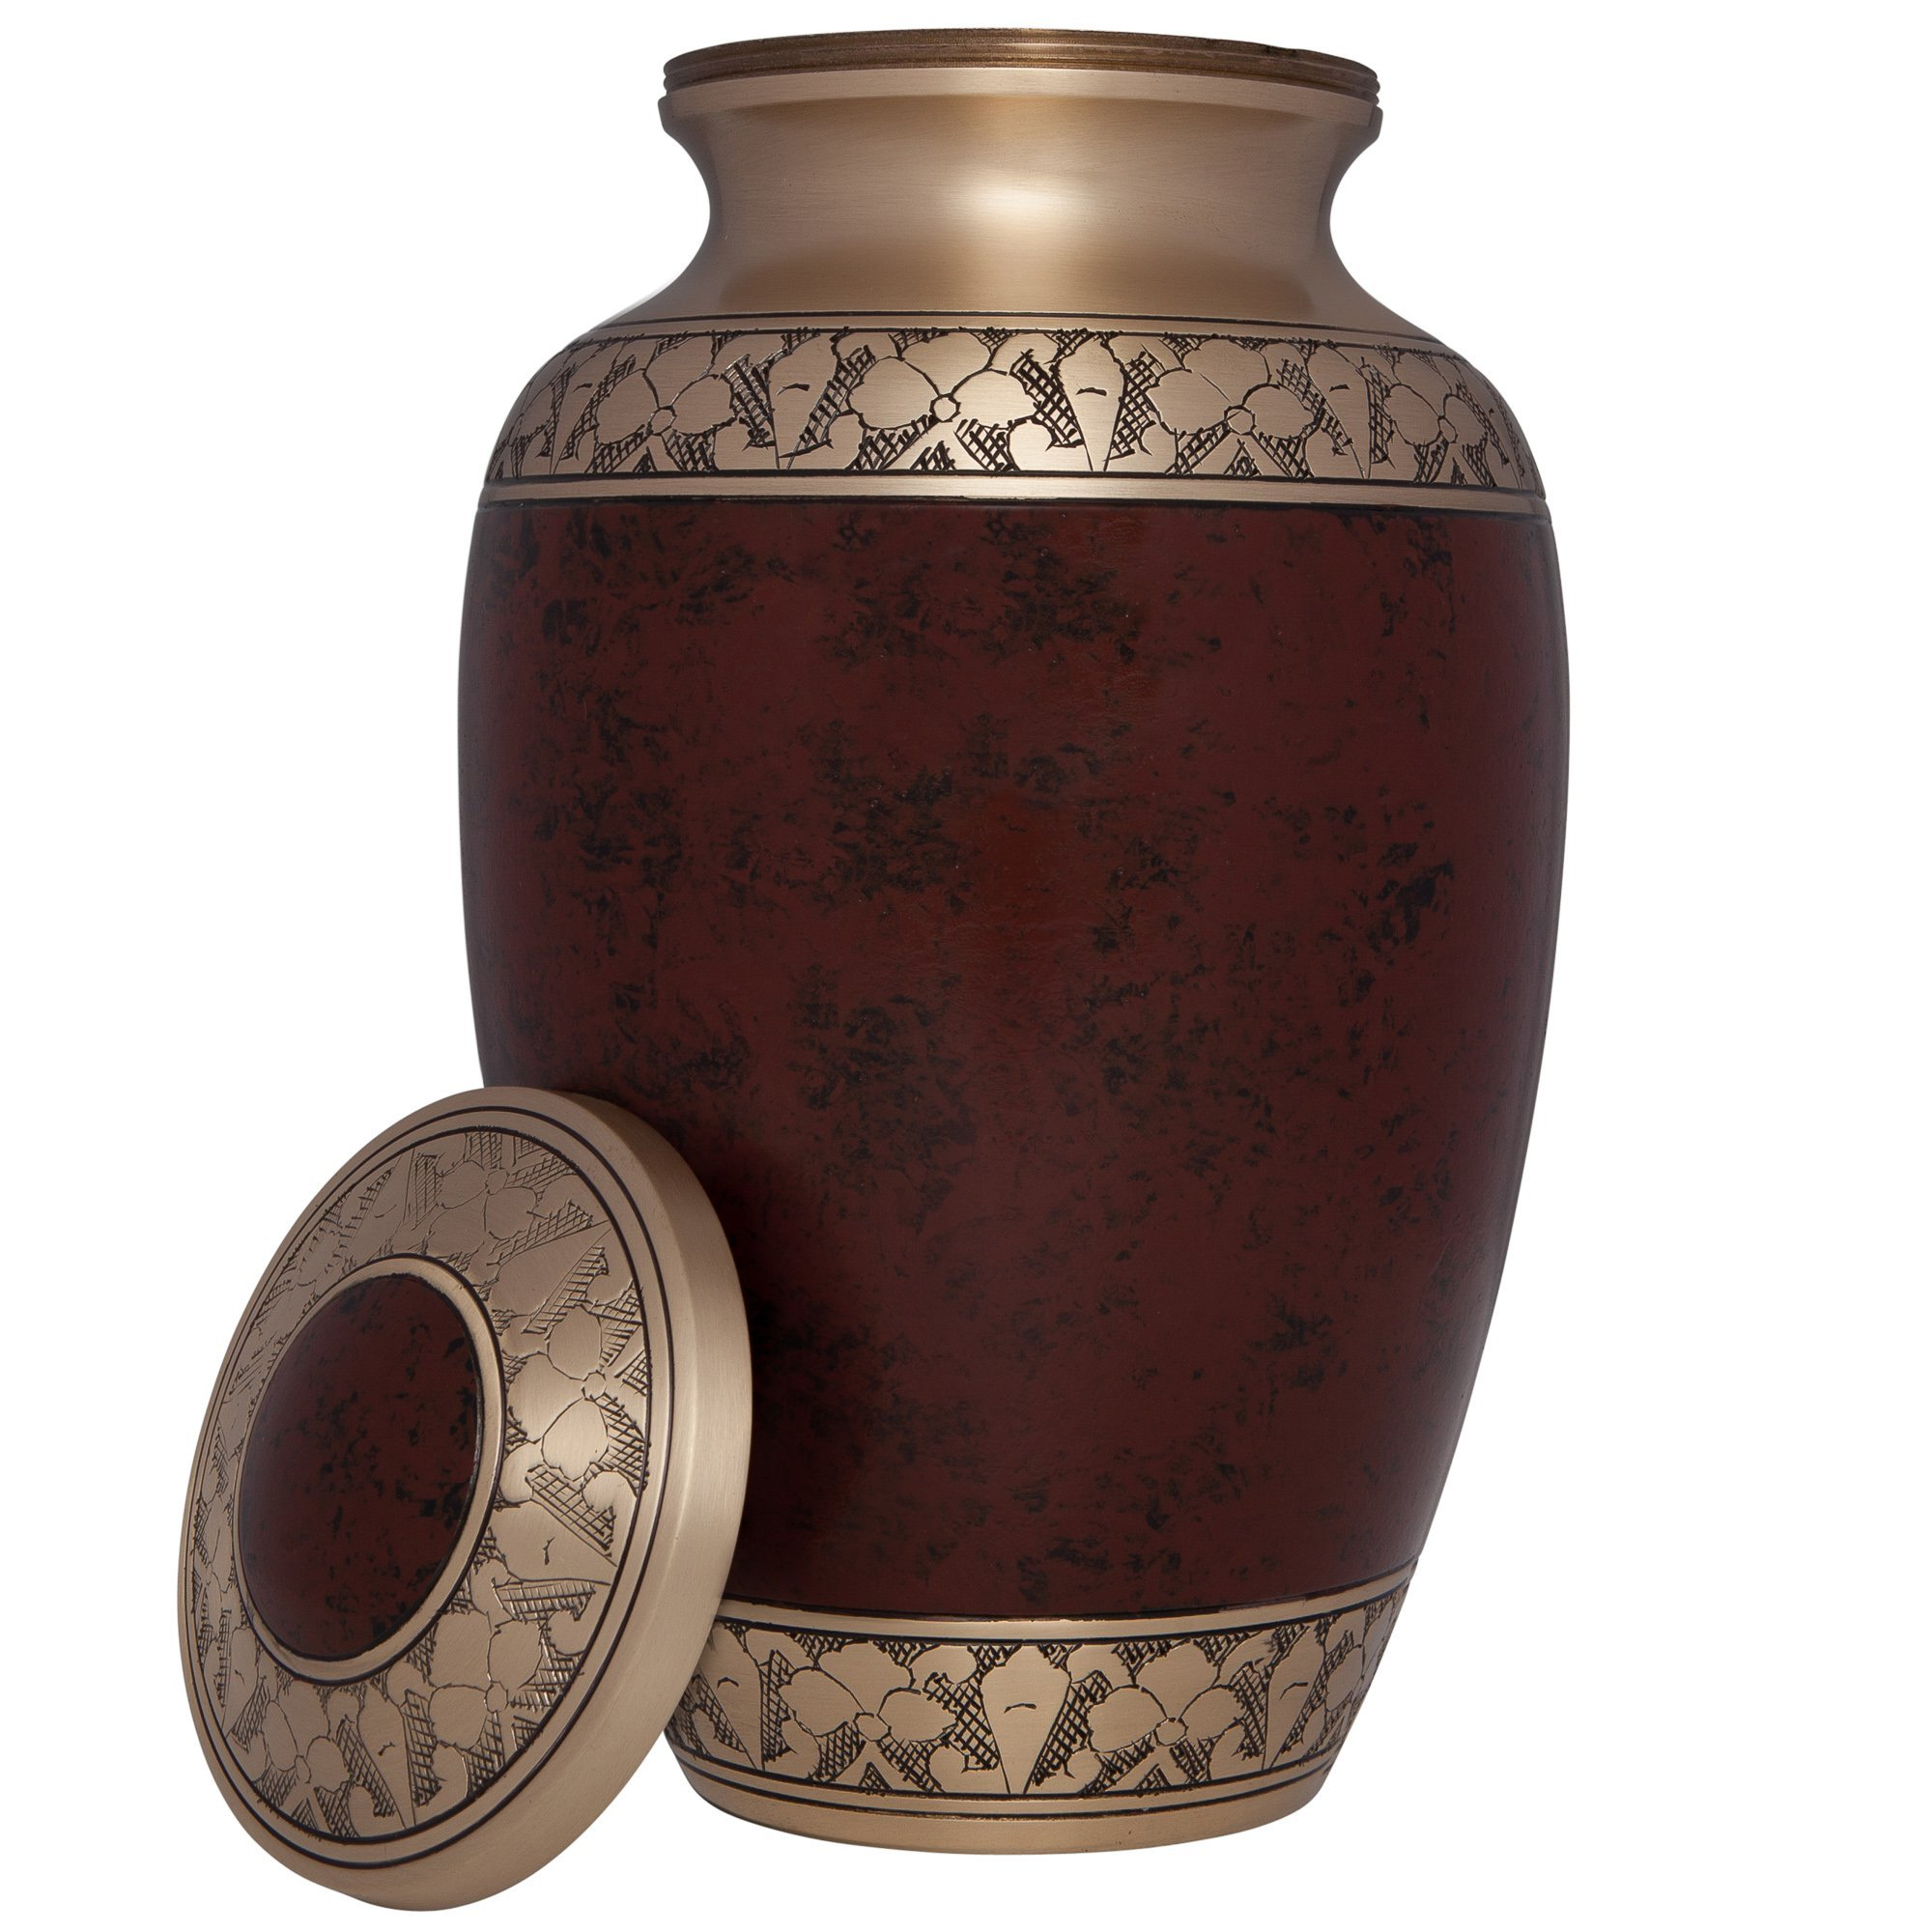 Brown Funeral Urn by Liliane Memorials - Cremation Urn for Human Ashes - Hand Made in Brass -Suitable for Cemetery Burial or Niche - Large Size fits remains of Adults up to 200 lbs- Tranquility Brown by Liliane Memorials (Image #2)